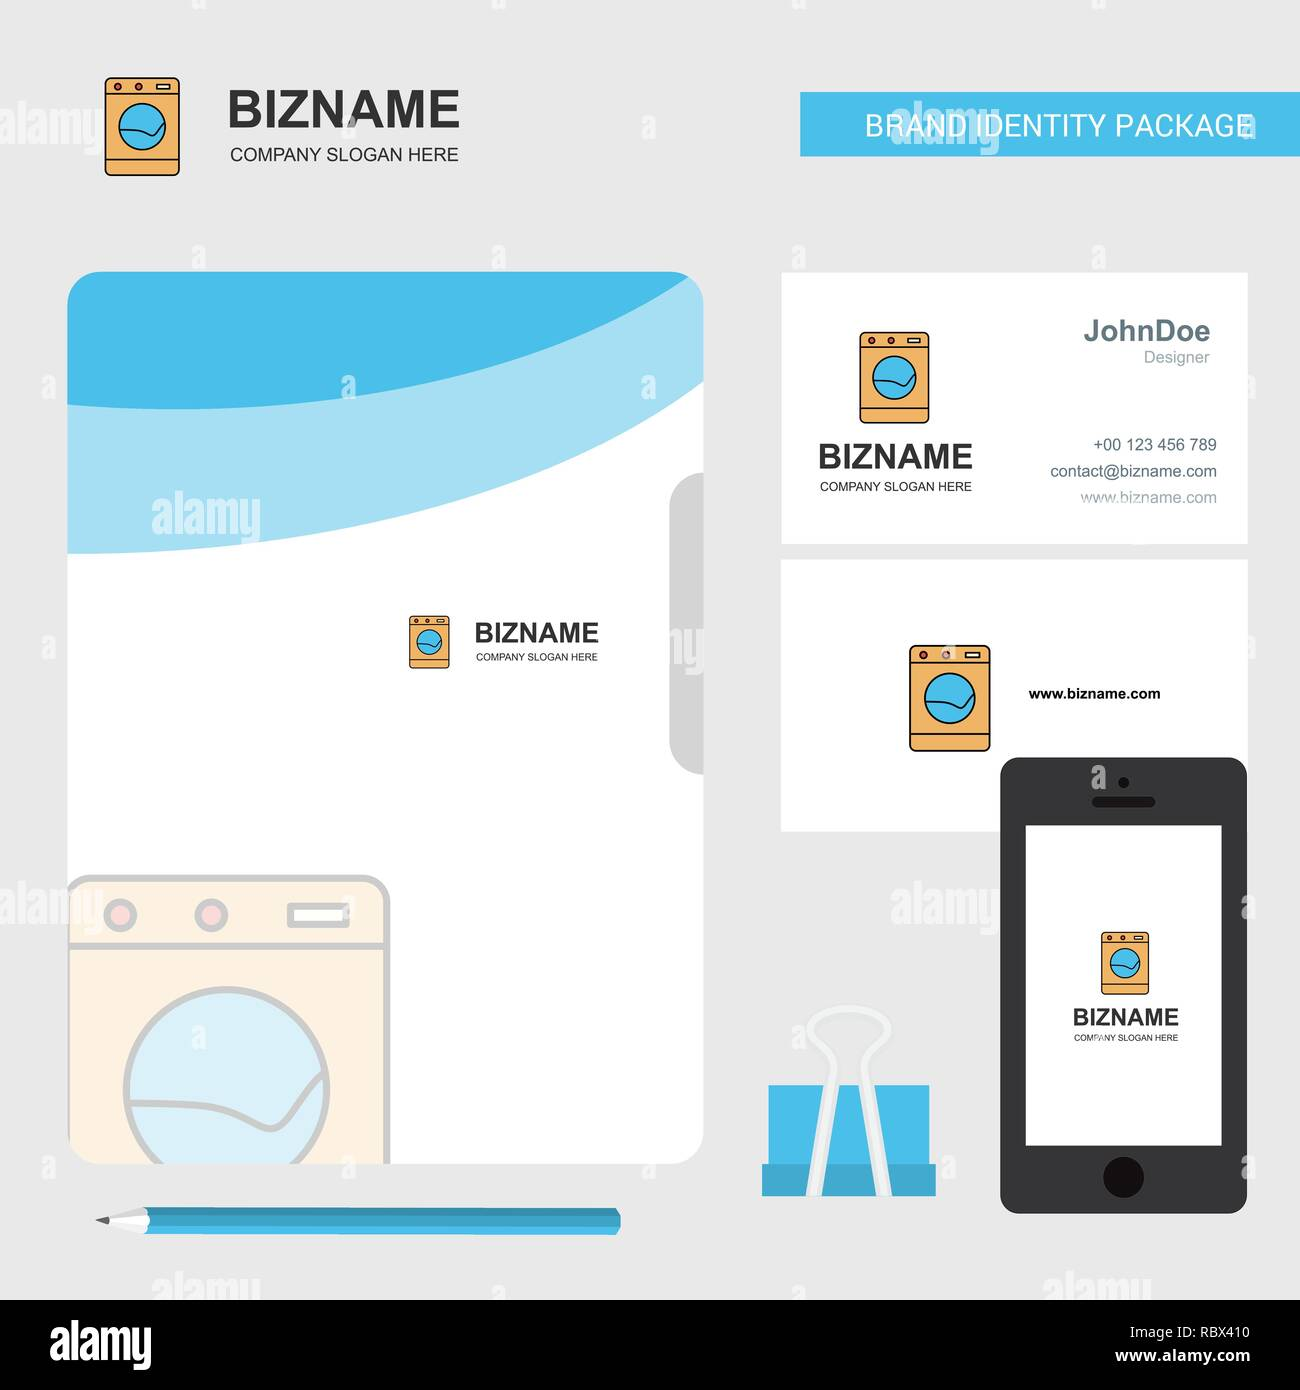 Washing machine Business Logo, File Cover Visiting Card and